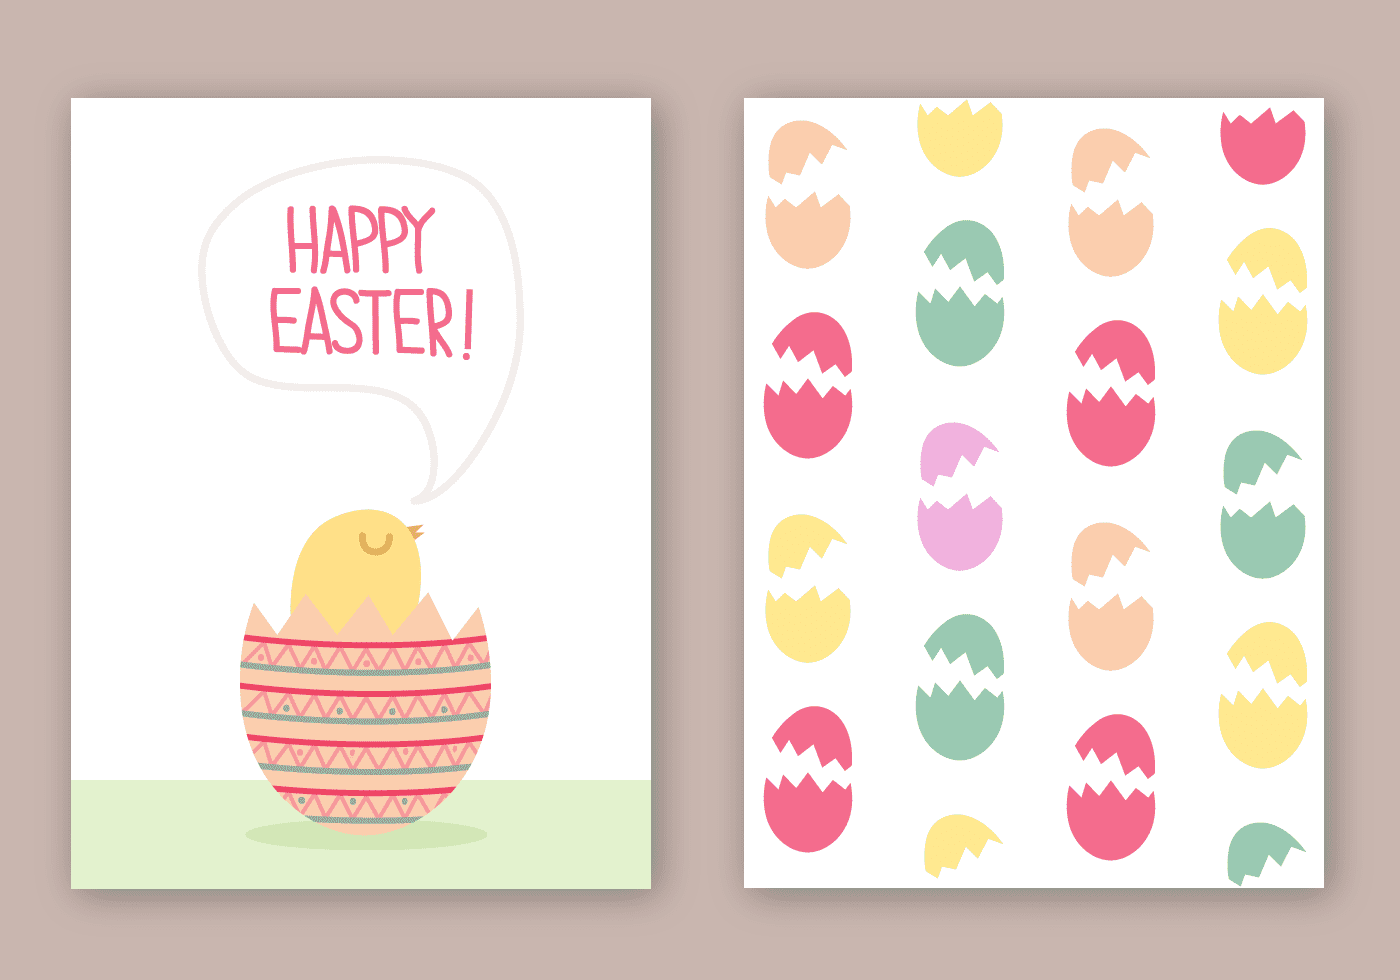 220 Best Easter Graphics in 2020: Free & Premium - free easter card vector